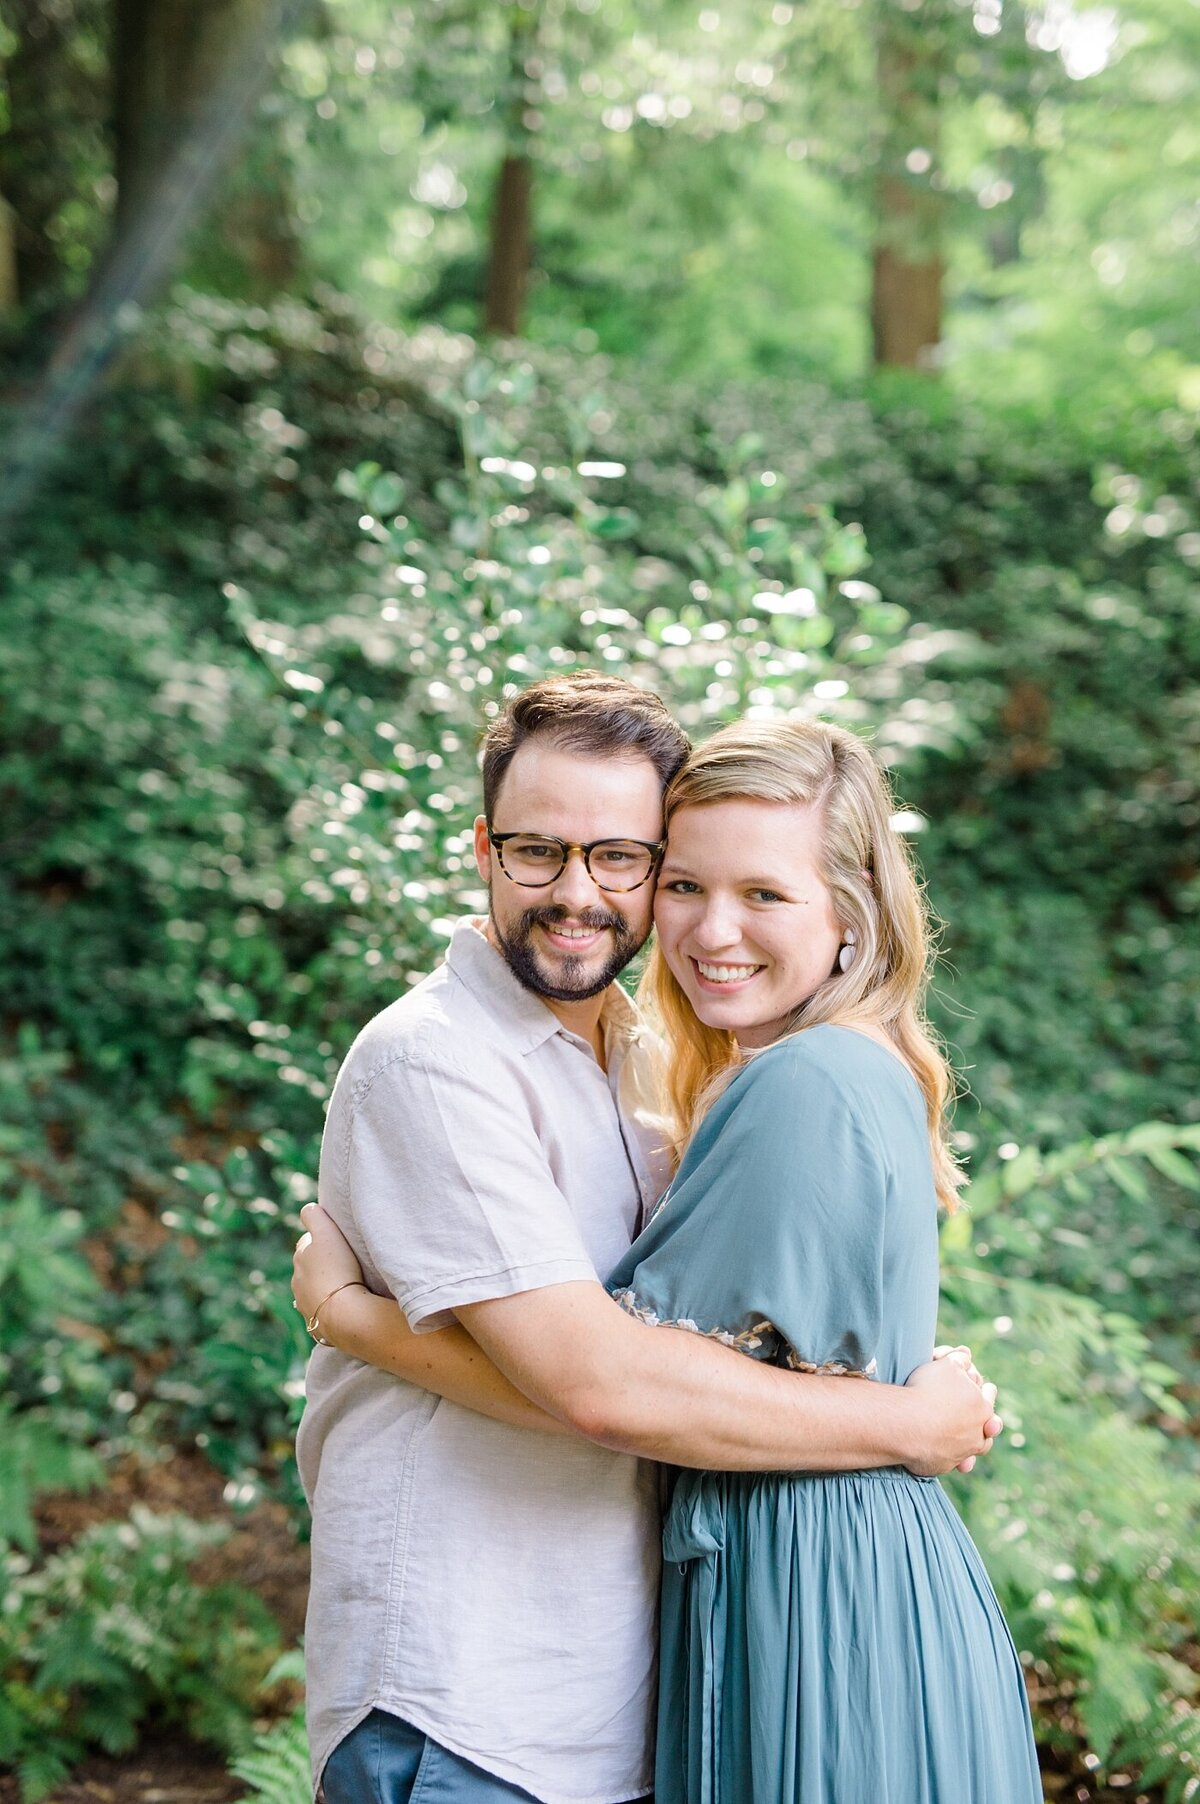 cator-woolford-gardens-engagement-wedding-photographer-laura-barnes-photo-shackelford-23